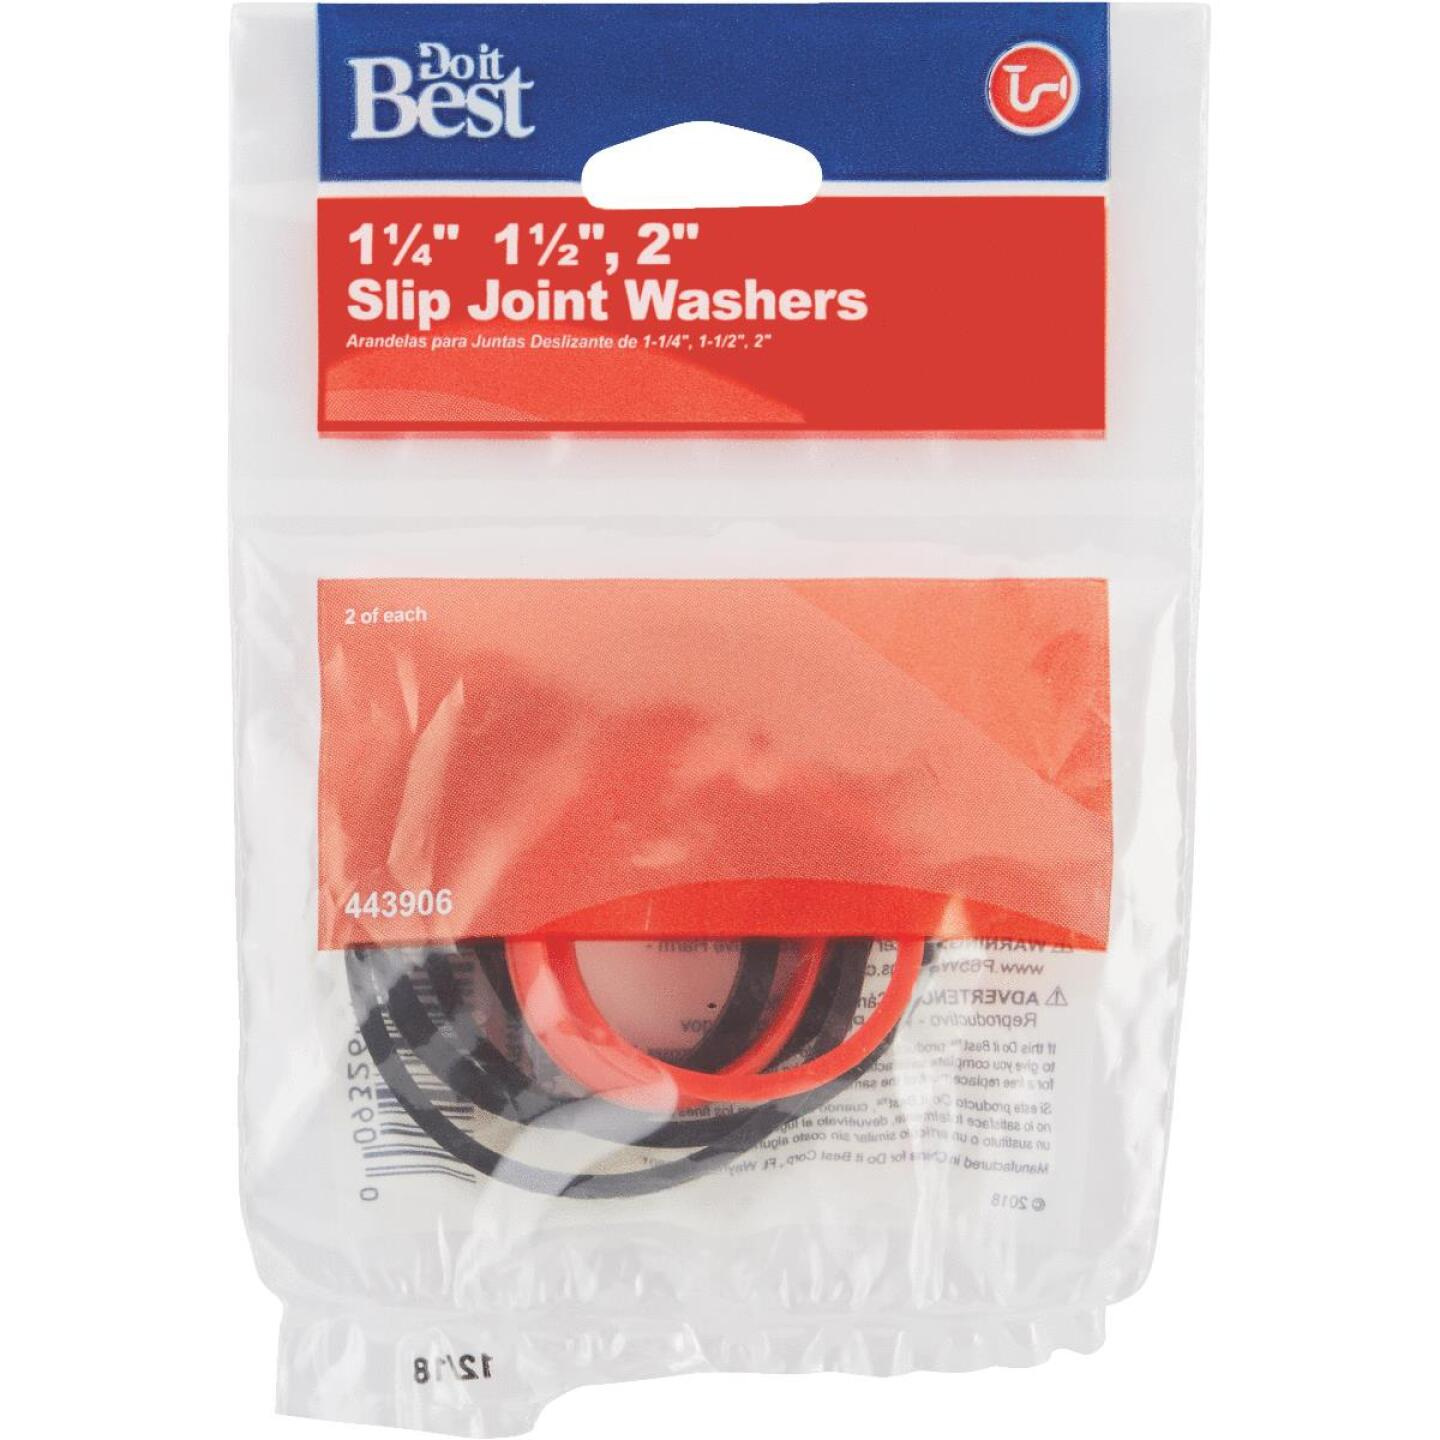 Do it Assorted Rubber Slip Joint Washers (6 Pack) Image 2